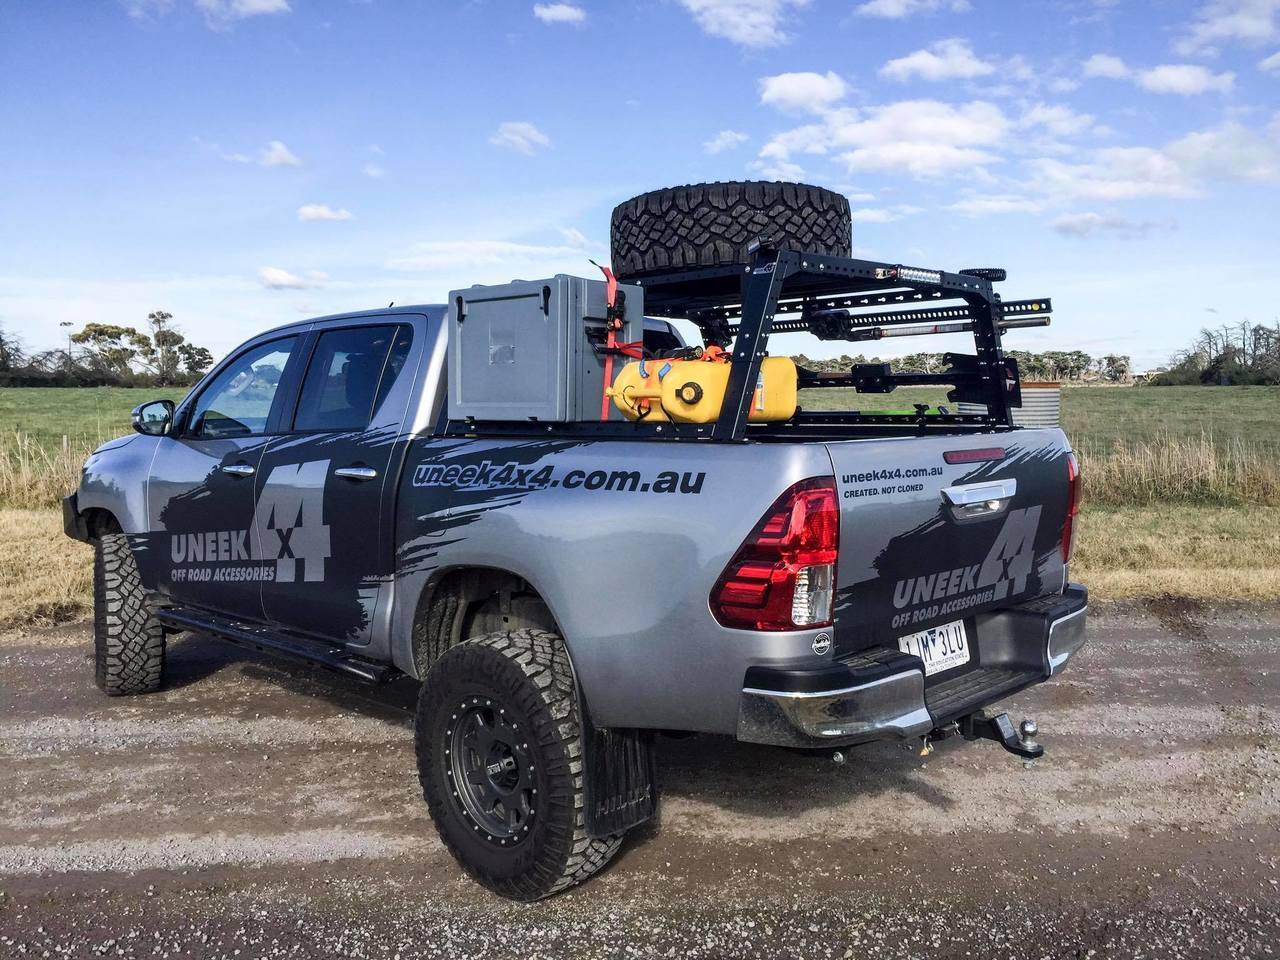 UNEEK 4X4 ADVENTURE RACK- UNIVERSAL FIT FOR UTE TUBS – Select 4WD